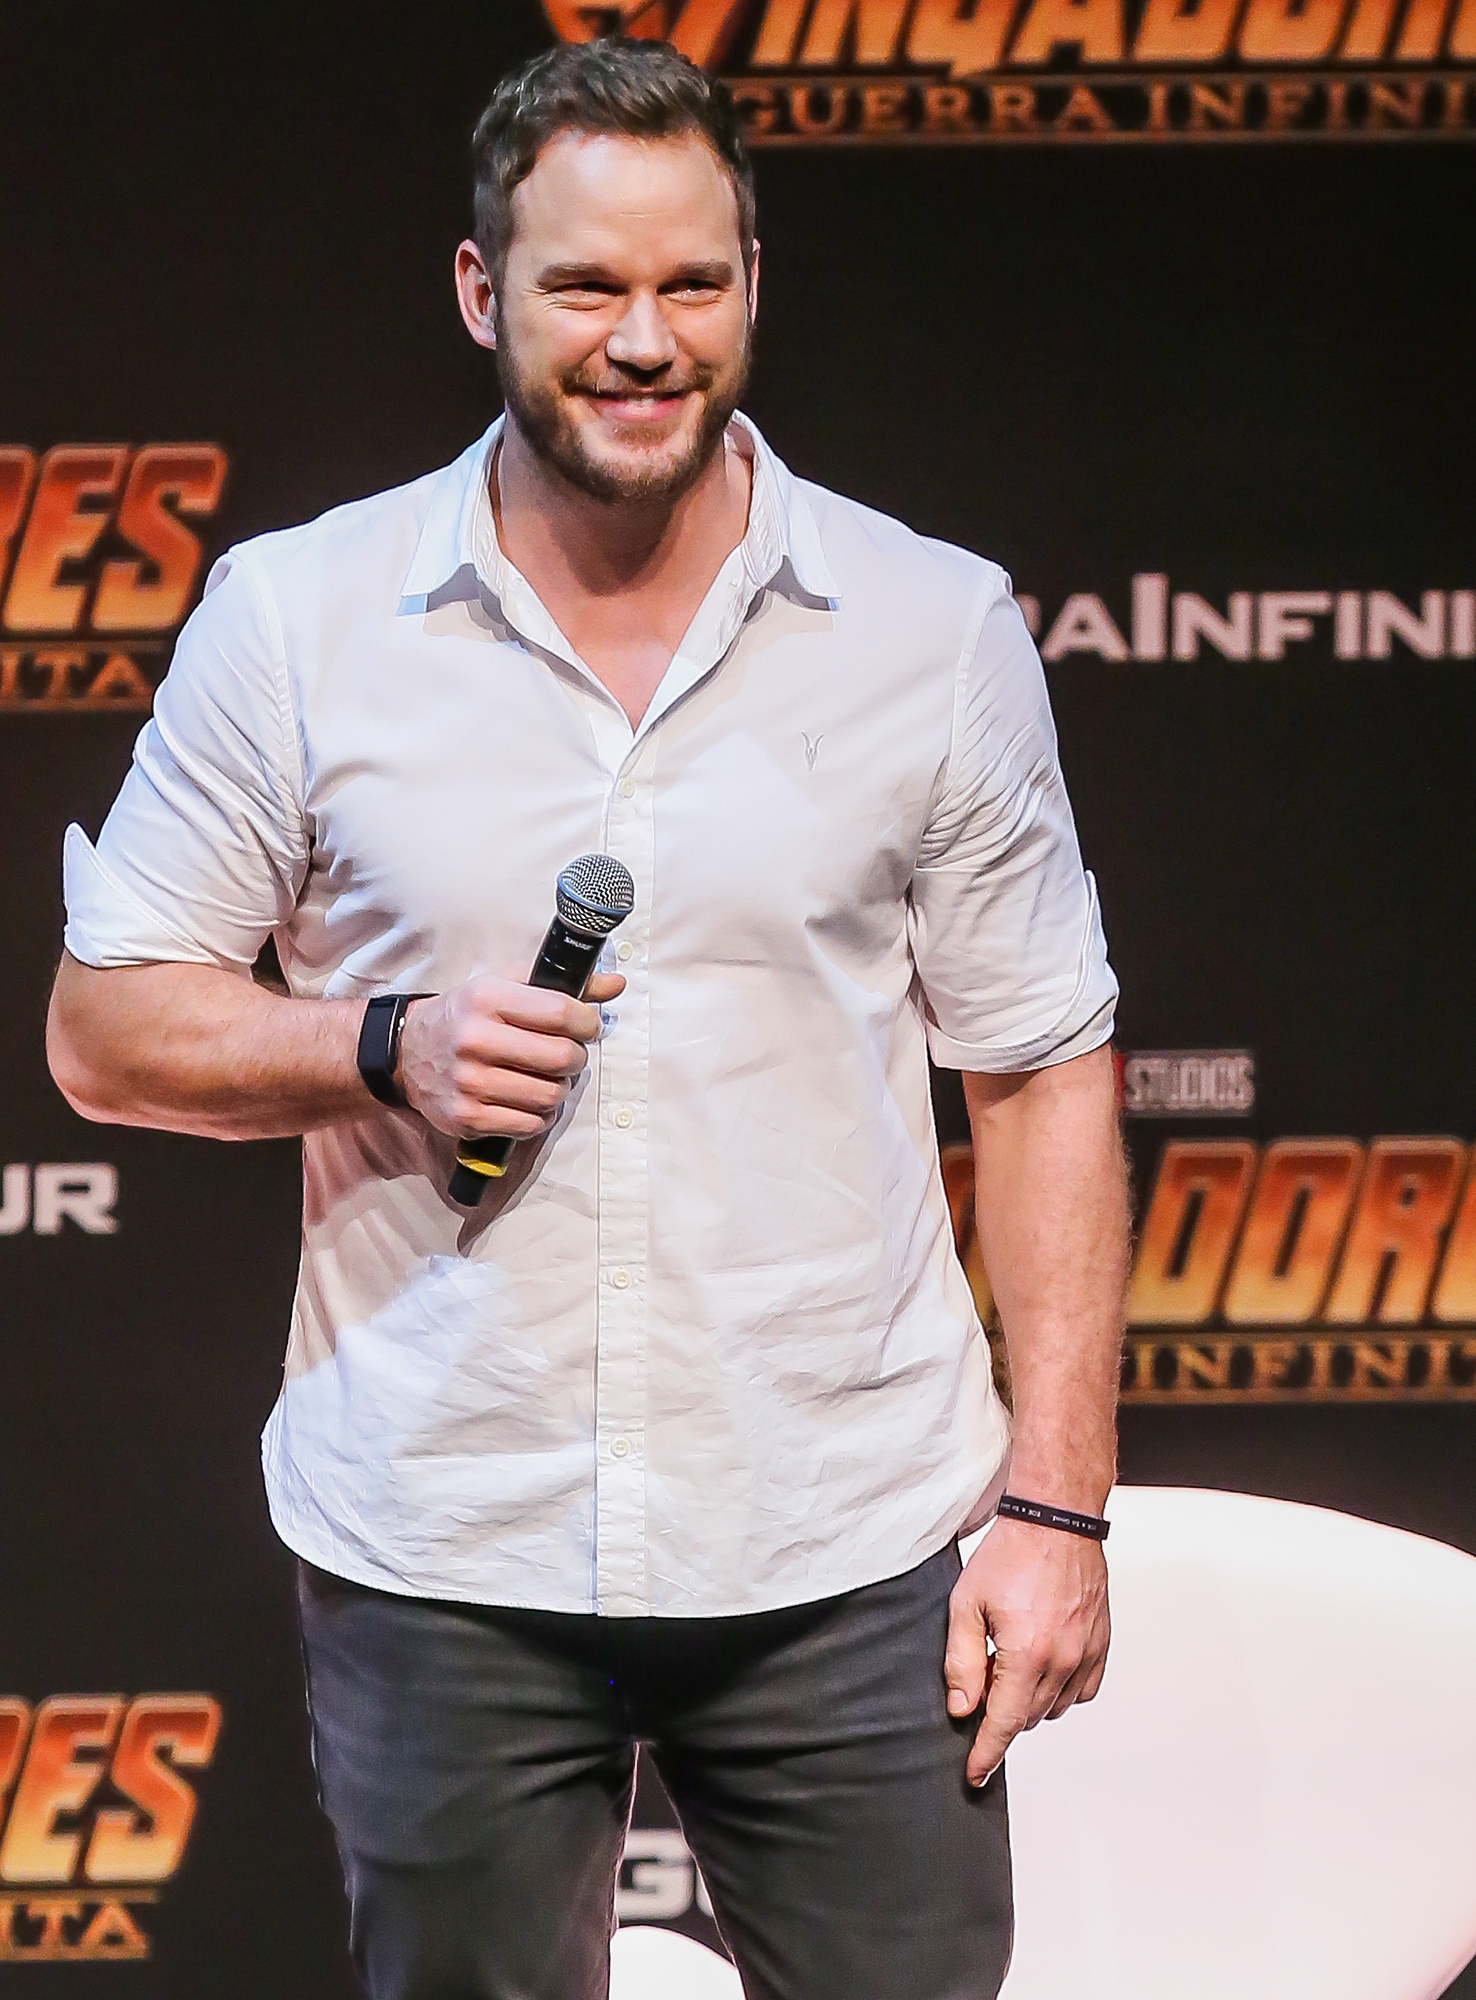 Chris Pratt attends the Sao Paulo Fan Event of Avengers: Infinity War at Auditorio do Ibirapuera on April 4th, 2018 in Sao Paulo, Brazil.